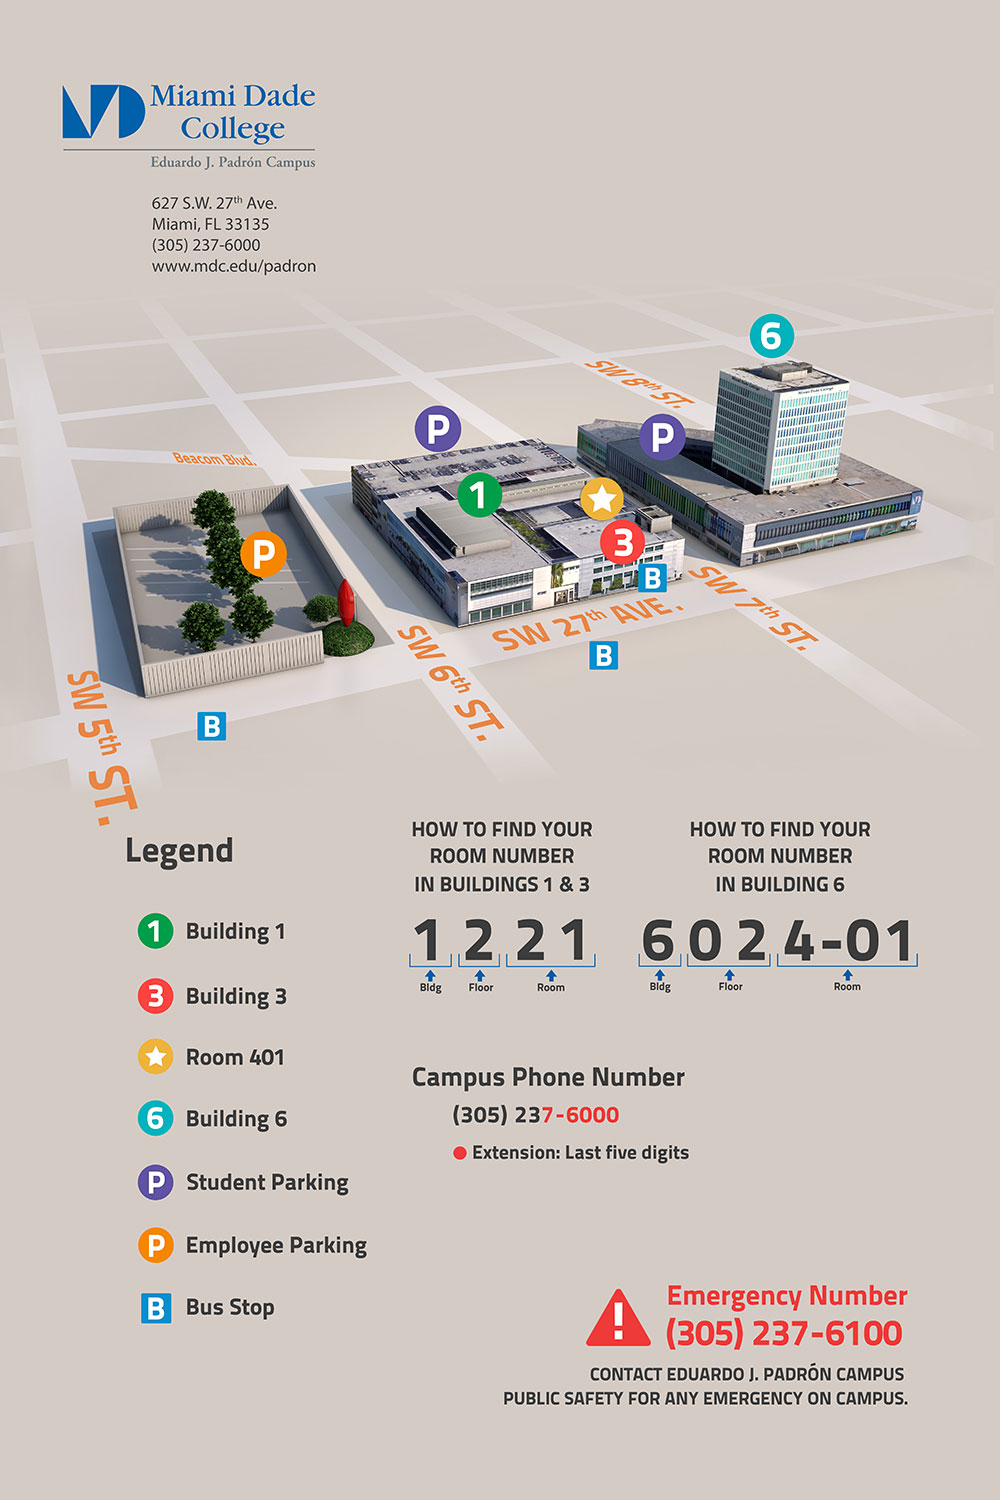 Campus Map and Directions - Eduardo J. Padrón Campus | Miami ... on spring hill college campus map, austin college campus map, tyler junior college campus map, stevens institute of technology campus map, blinn college campus map, saint edward's university current students, simmons college campus map, swarthmore college campus map, san antonio college campus map, south plains college campus map, saint xavier university campus map, skidmore college campus map, stonehill college campus map, salem college campus map, saint mary's university of minnesota campus map, siena college campus map, saint joseph's university campus map,